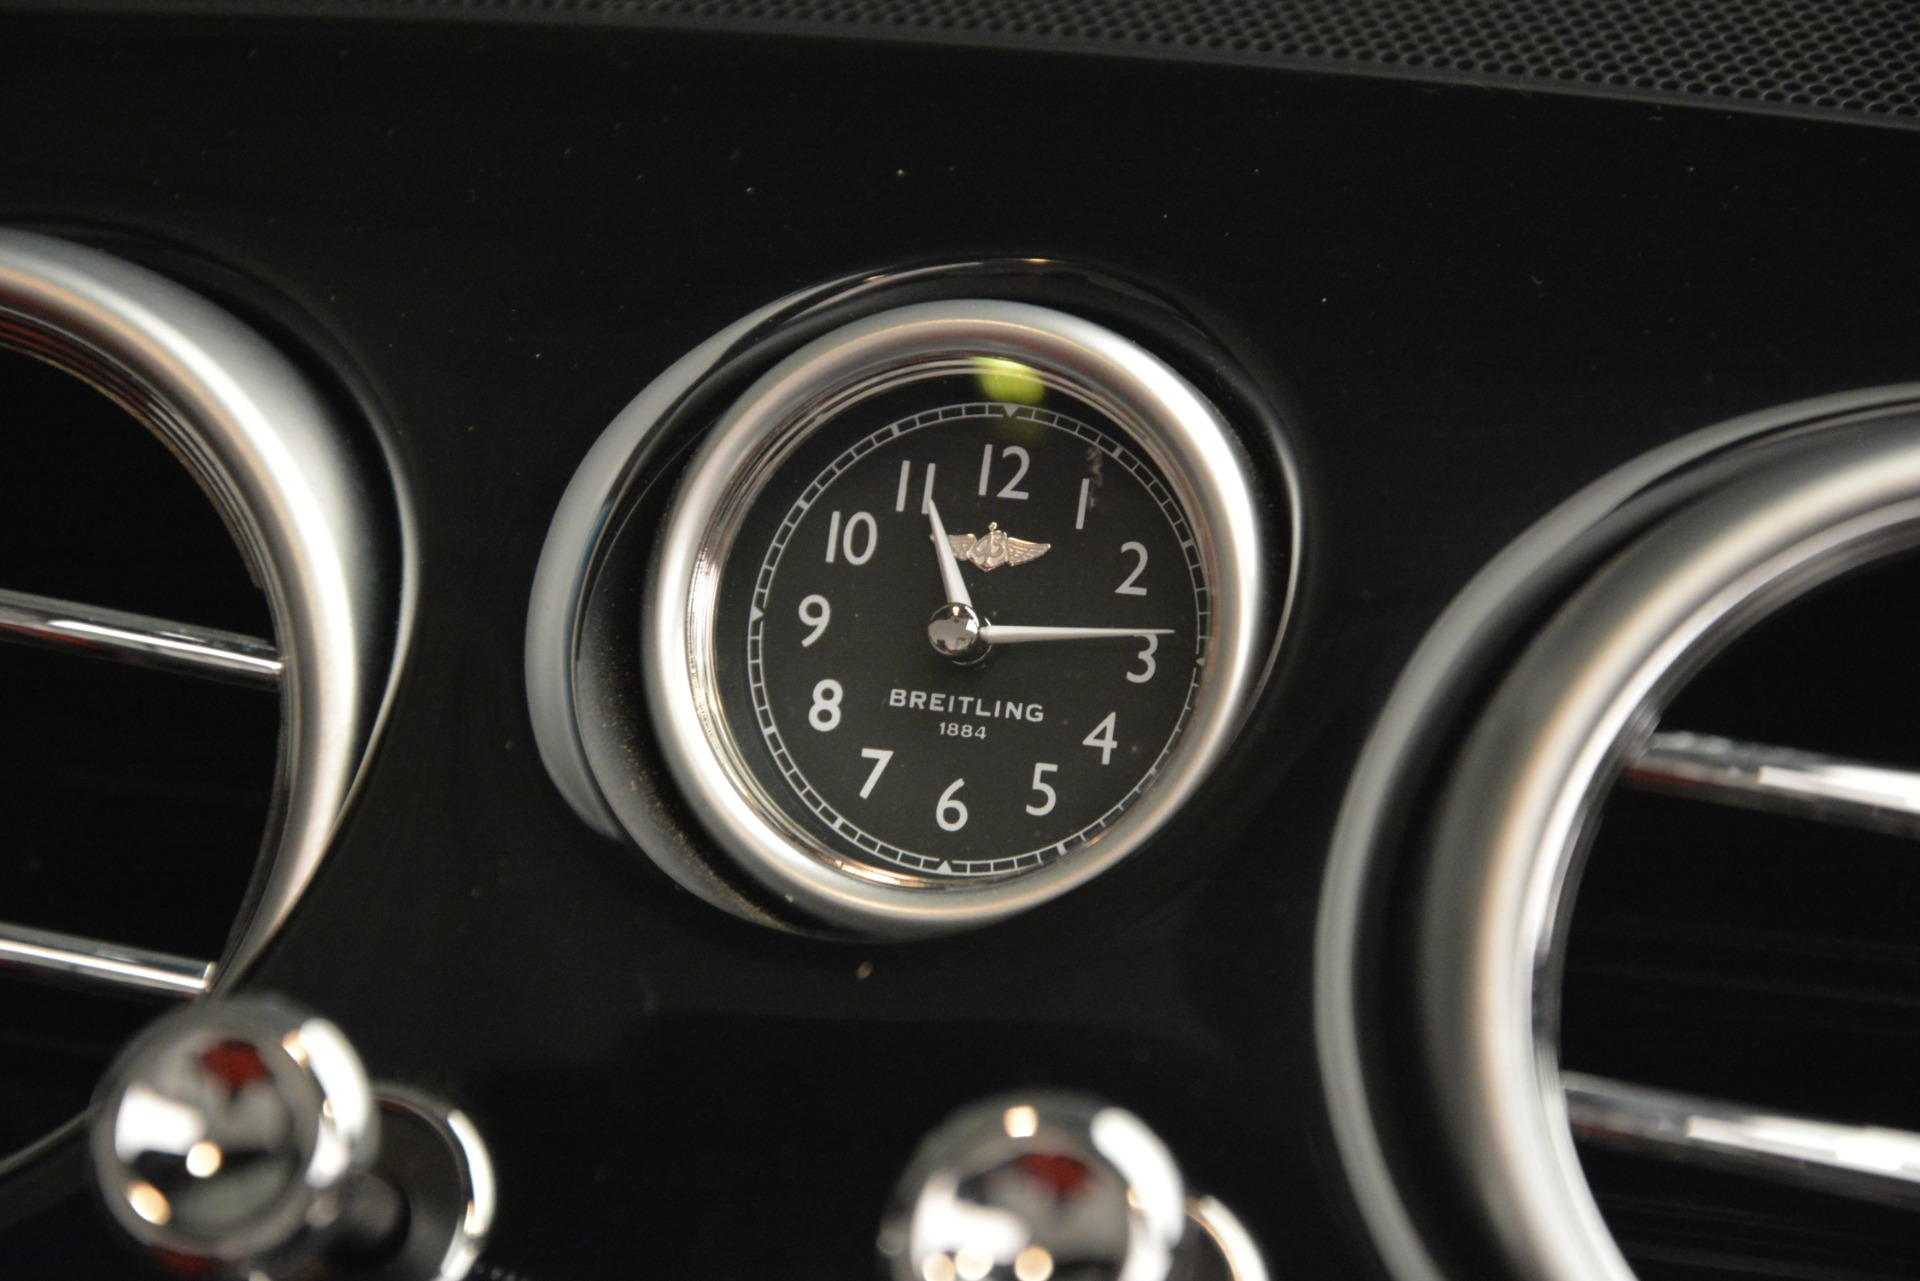 Used 2014 Bentley Continental GT V8 S For Sale In Westport, CT 3011_p27